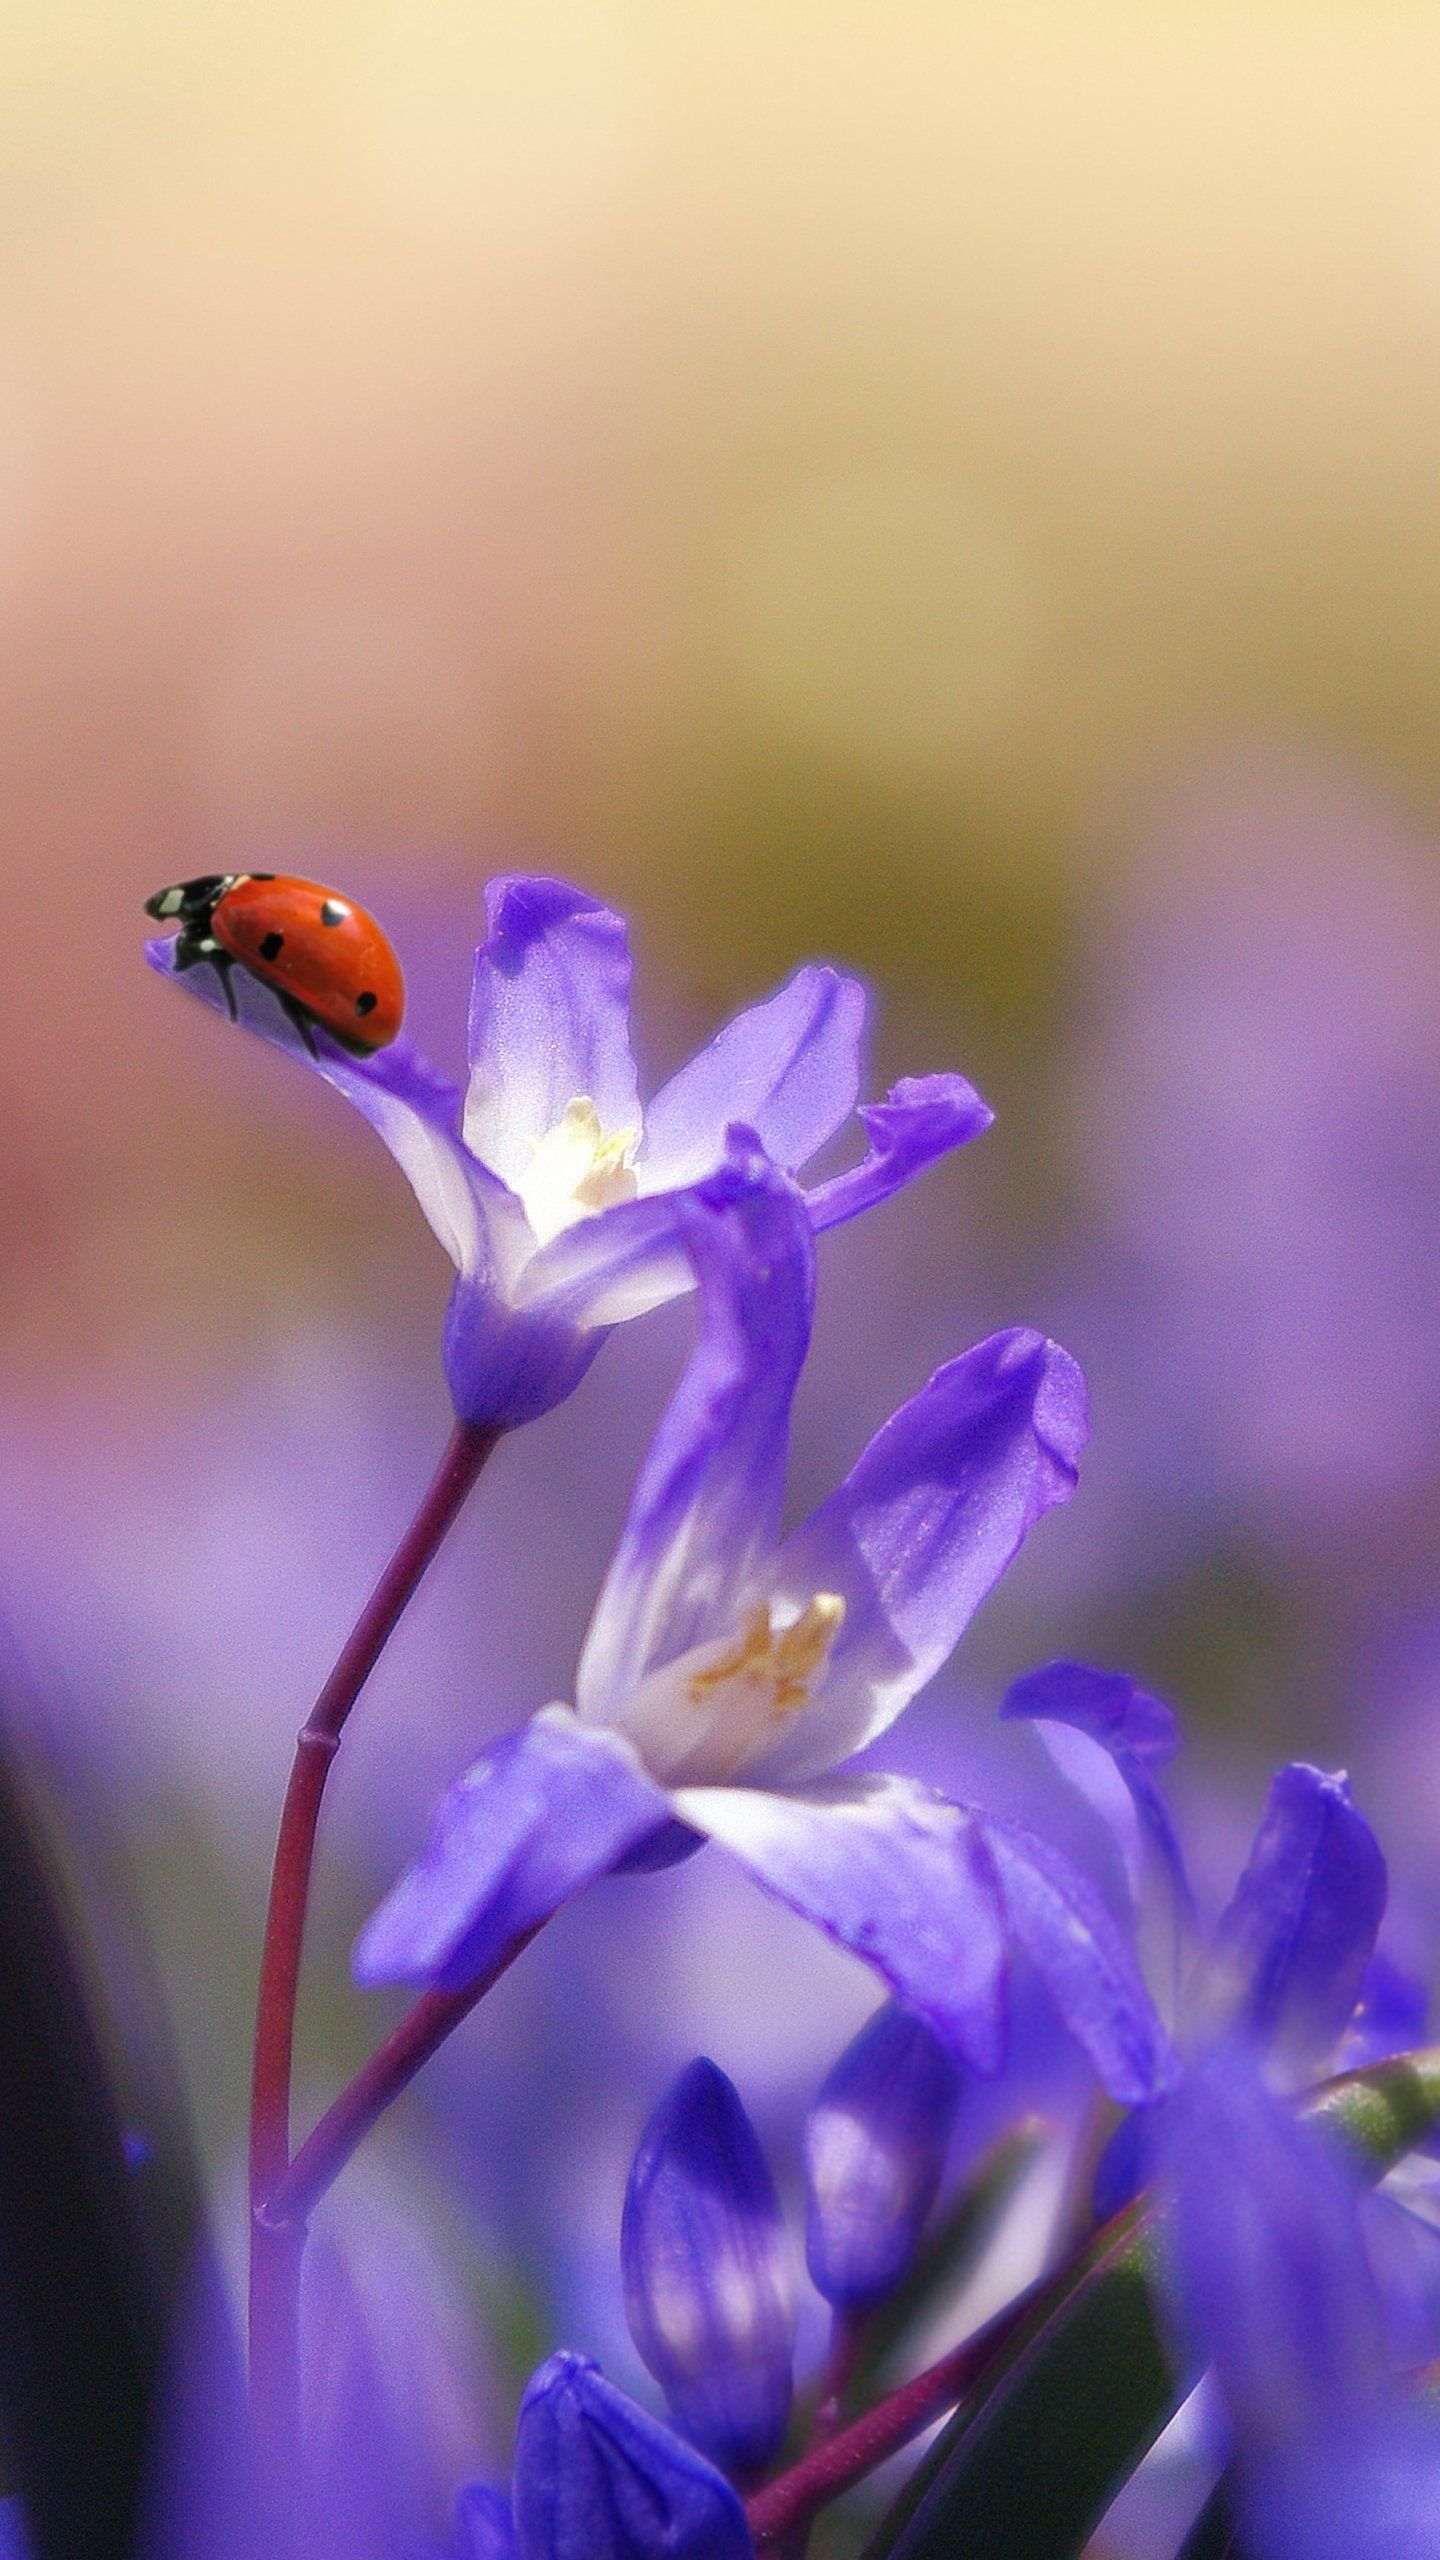 Ladybug on Purple Flower Wallpaper iPhone, Android